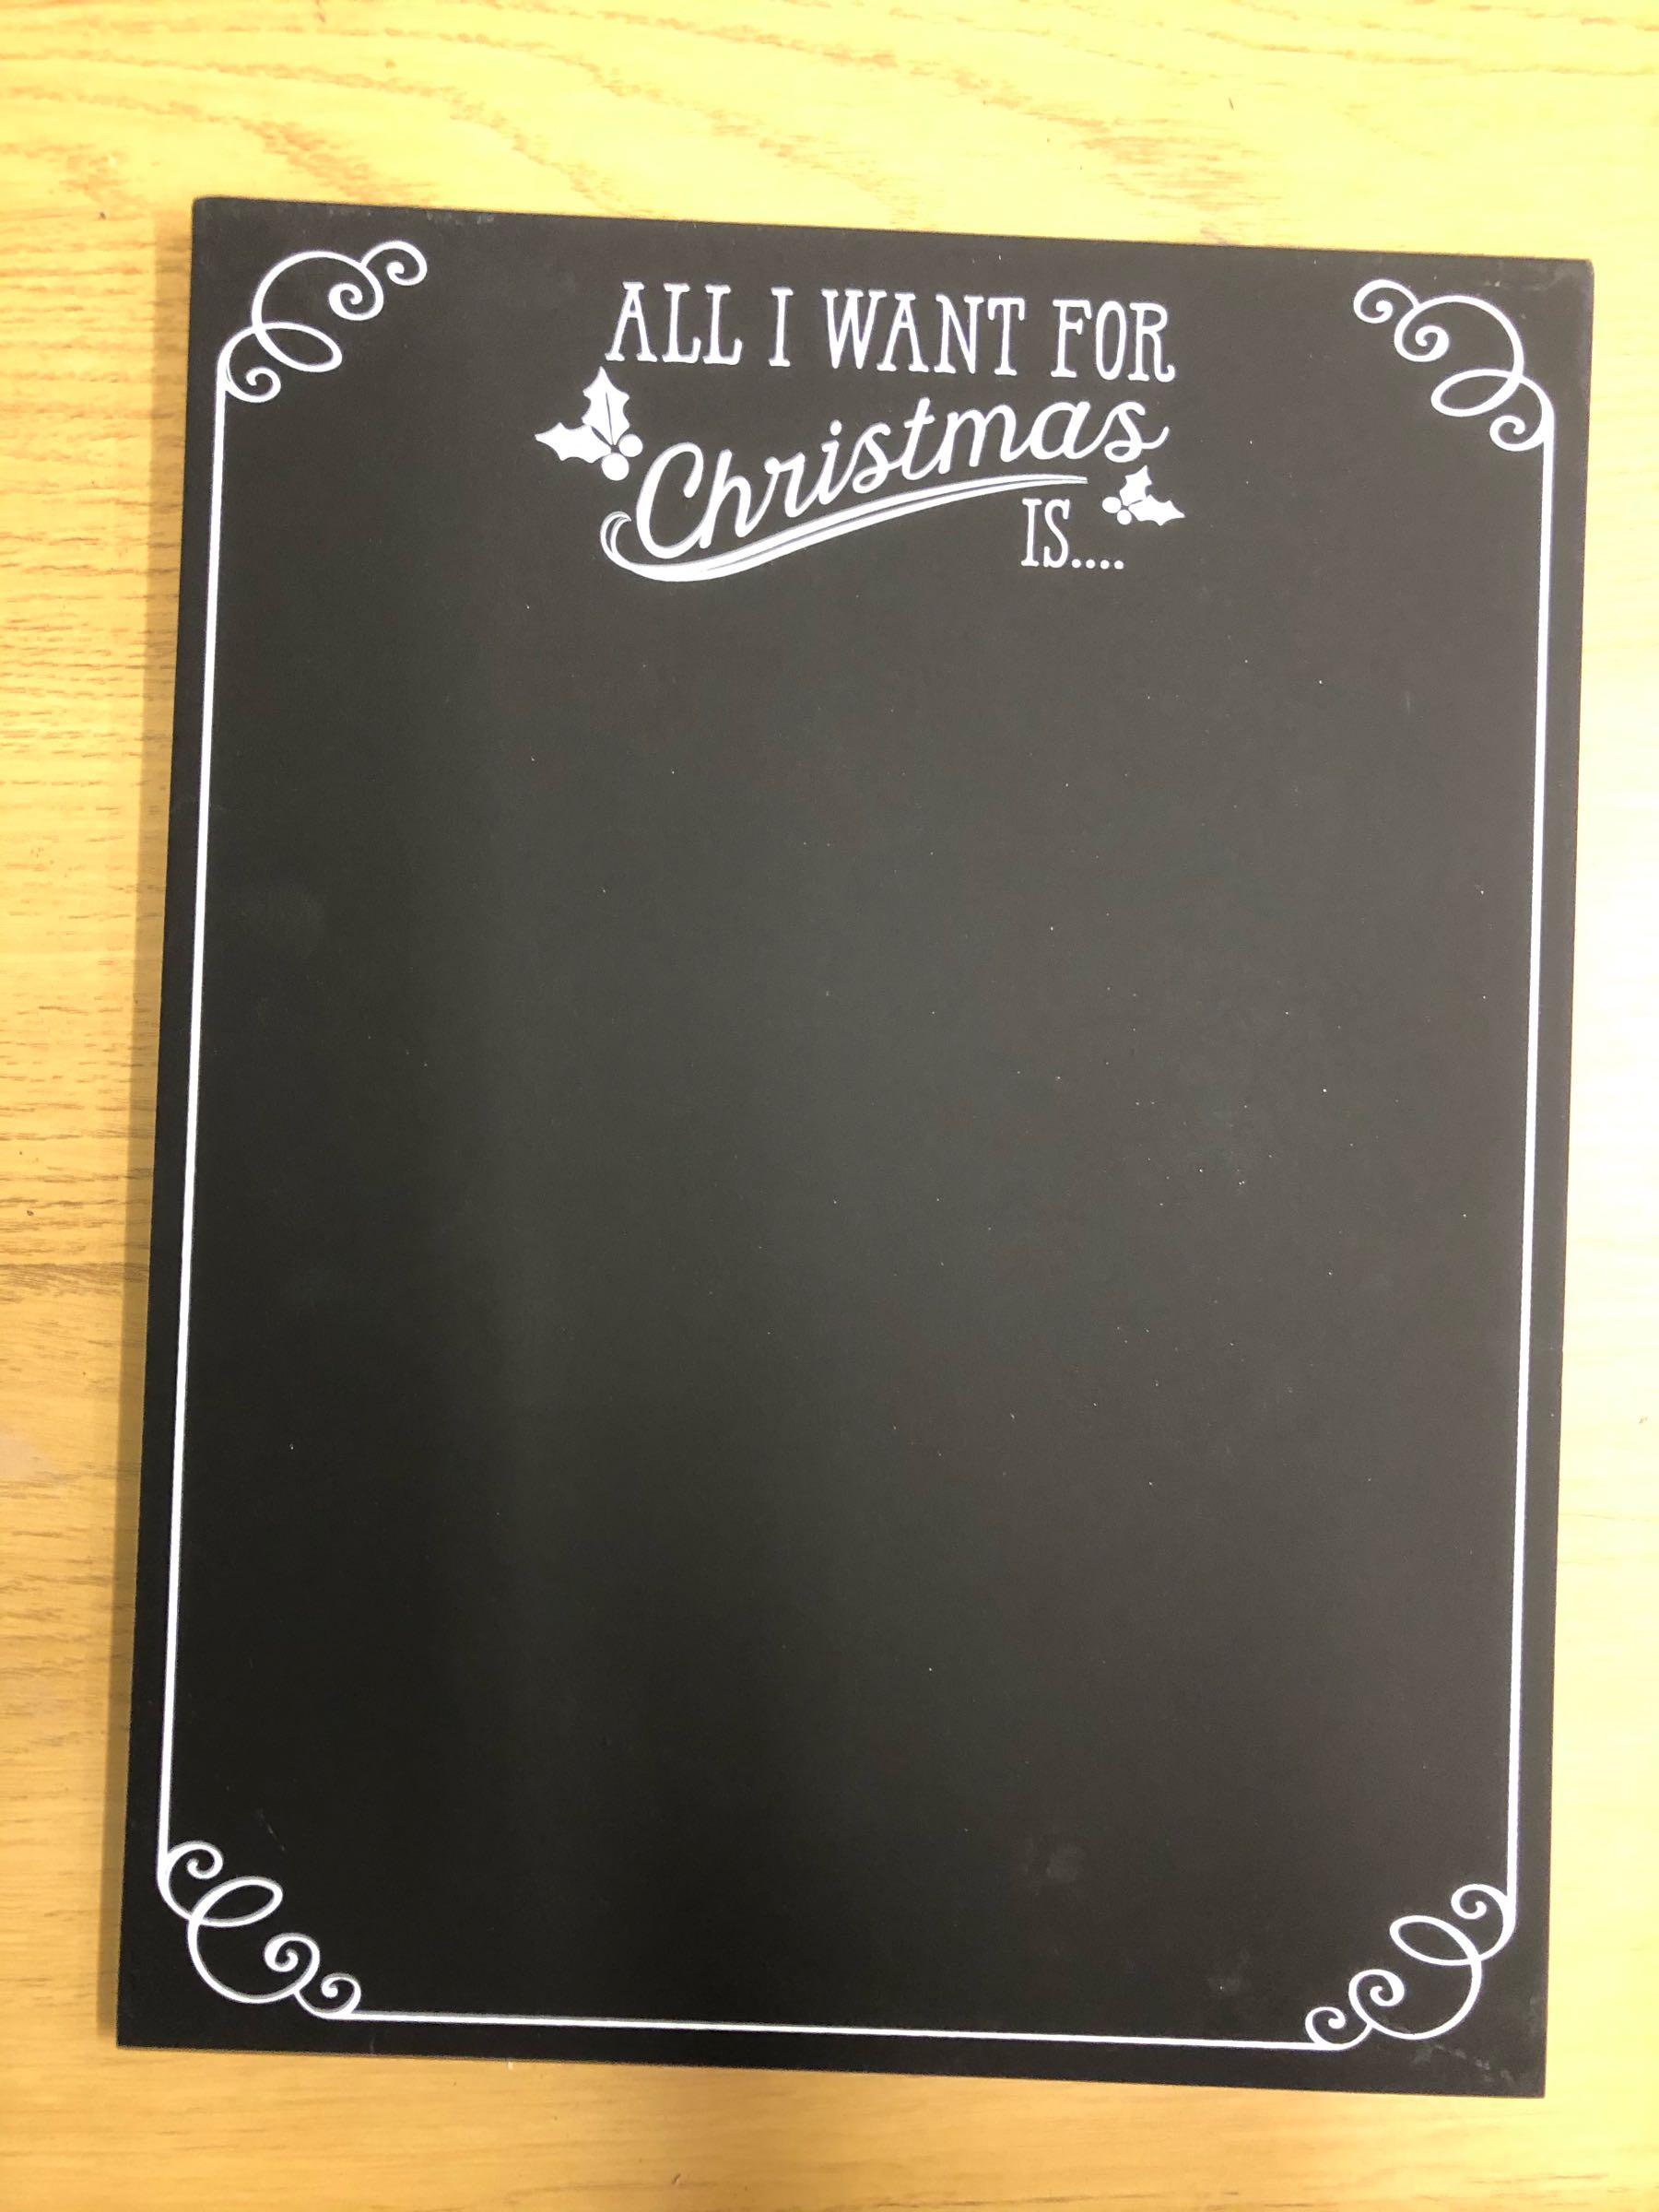 All I want for Christmas chalkboard